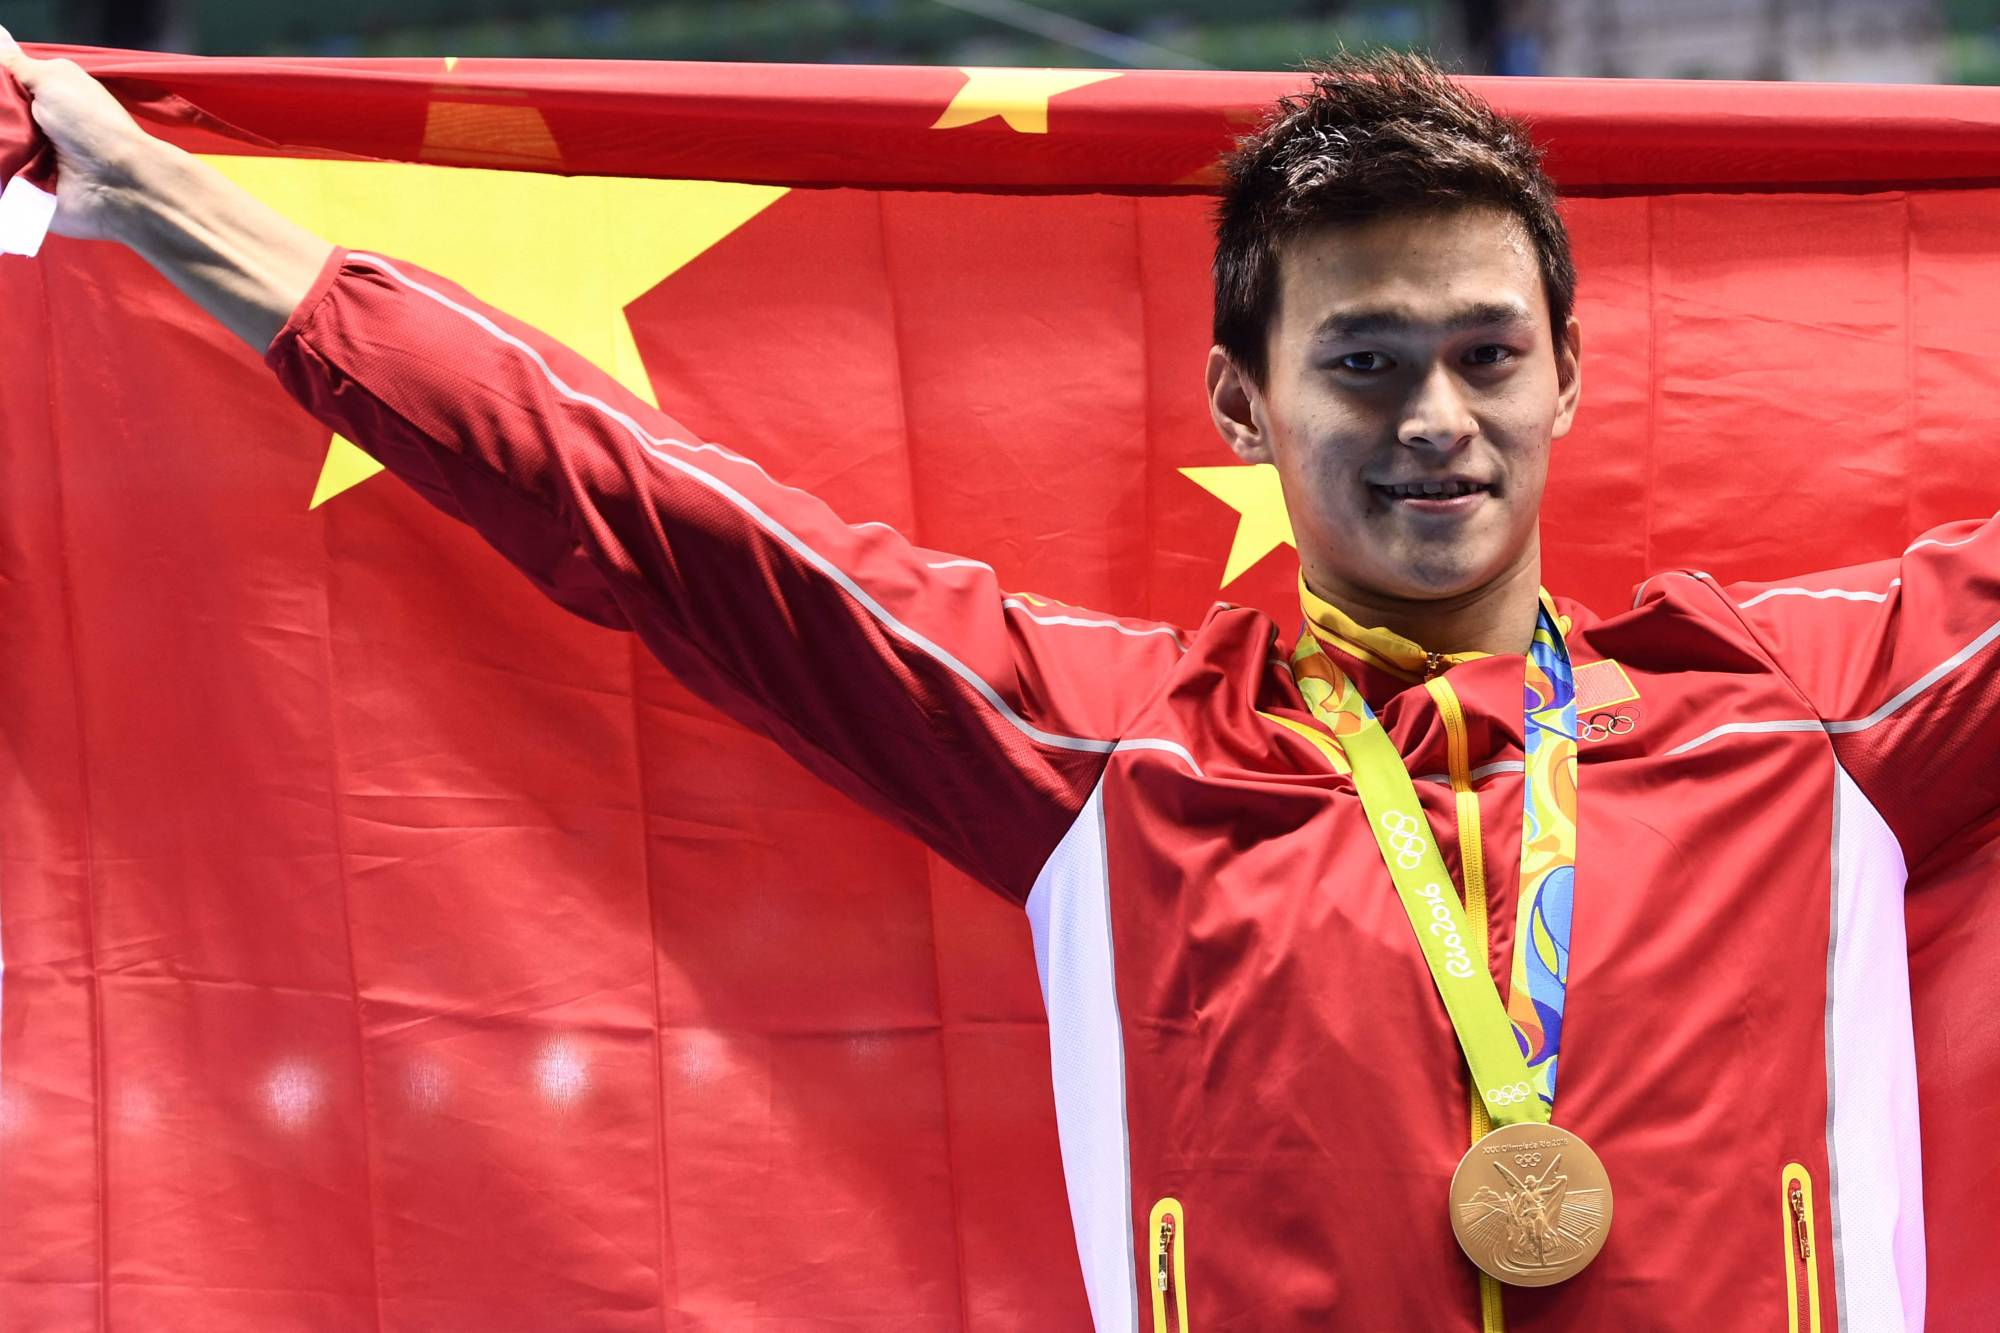 China's Sun Yang poses with his gold medal after winning the men's 200 meter freestyle final at the 2016 Olympic Games in Rio de Janeiro. | AFP-JIJI